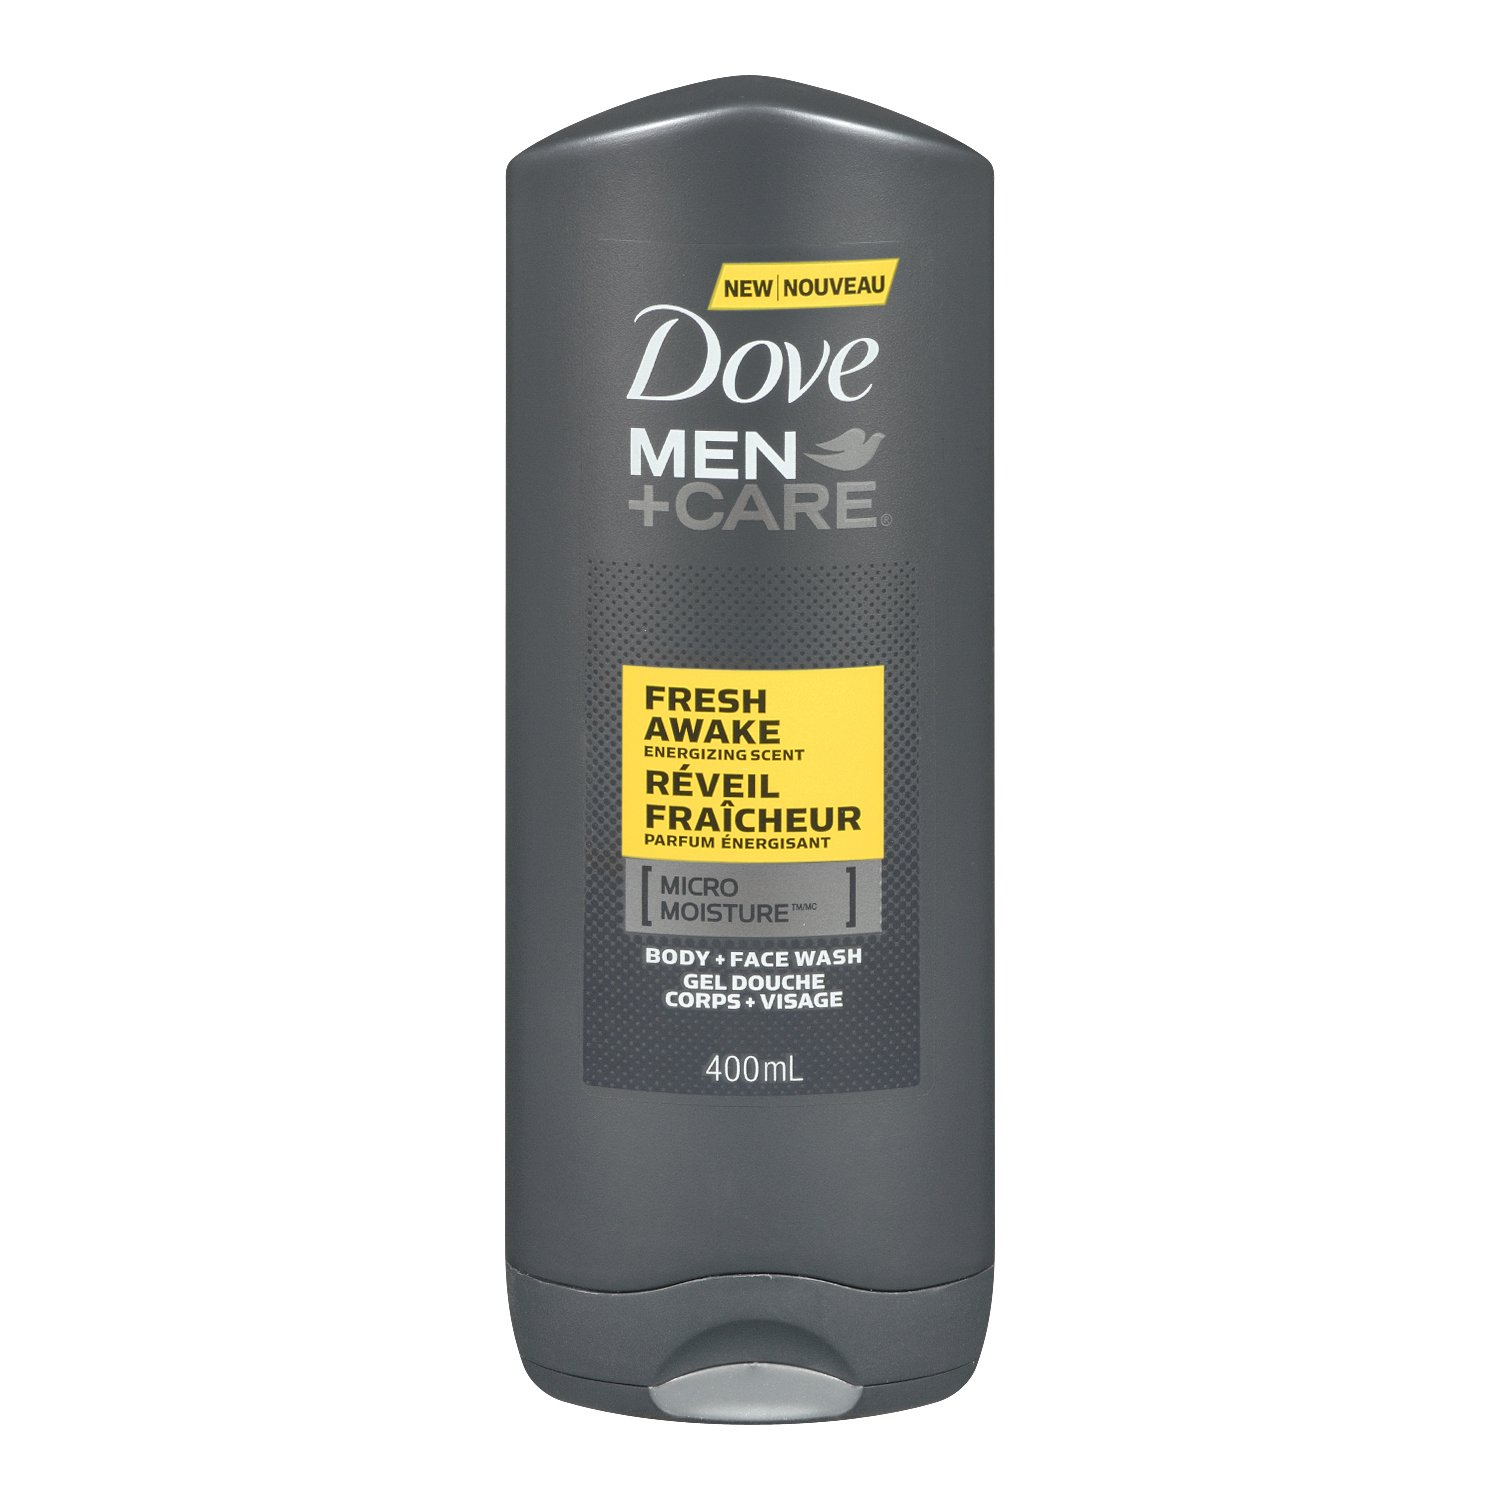 Dove Men +Care Hydration Balance Micro Moisture Body + Face Wash 400ml Dove Bw Men' s+Care